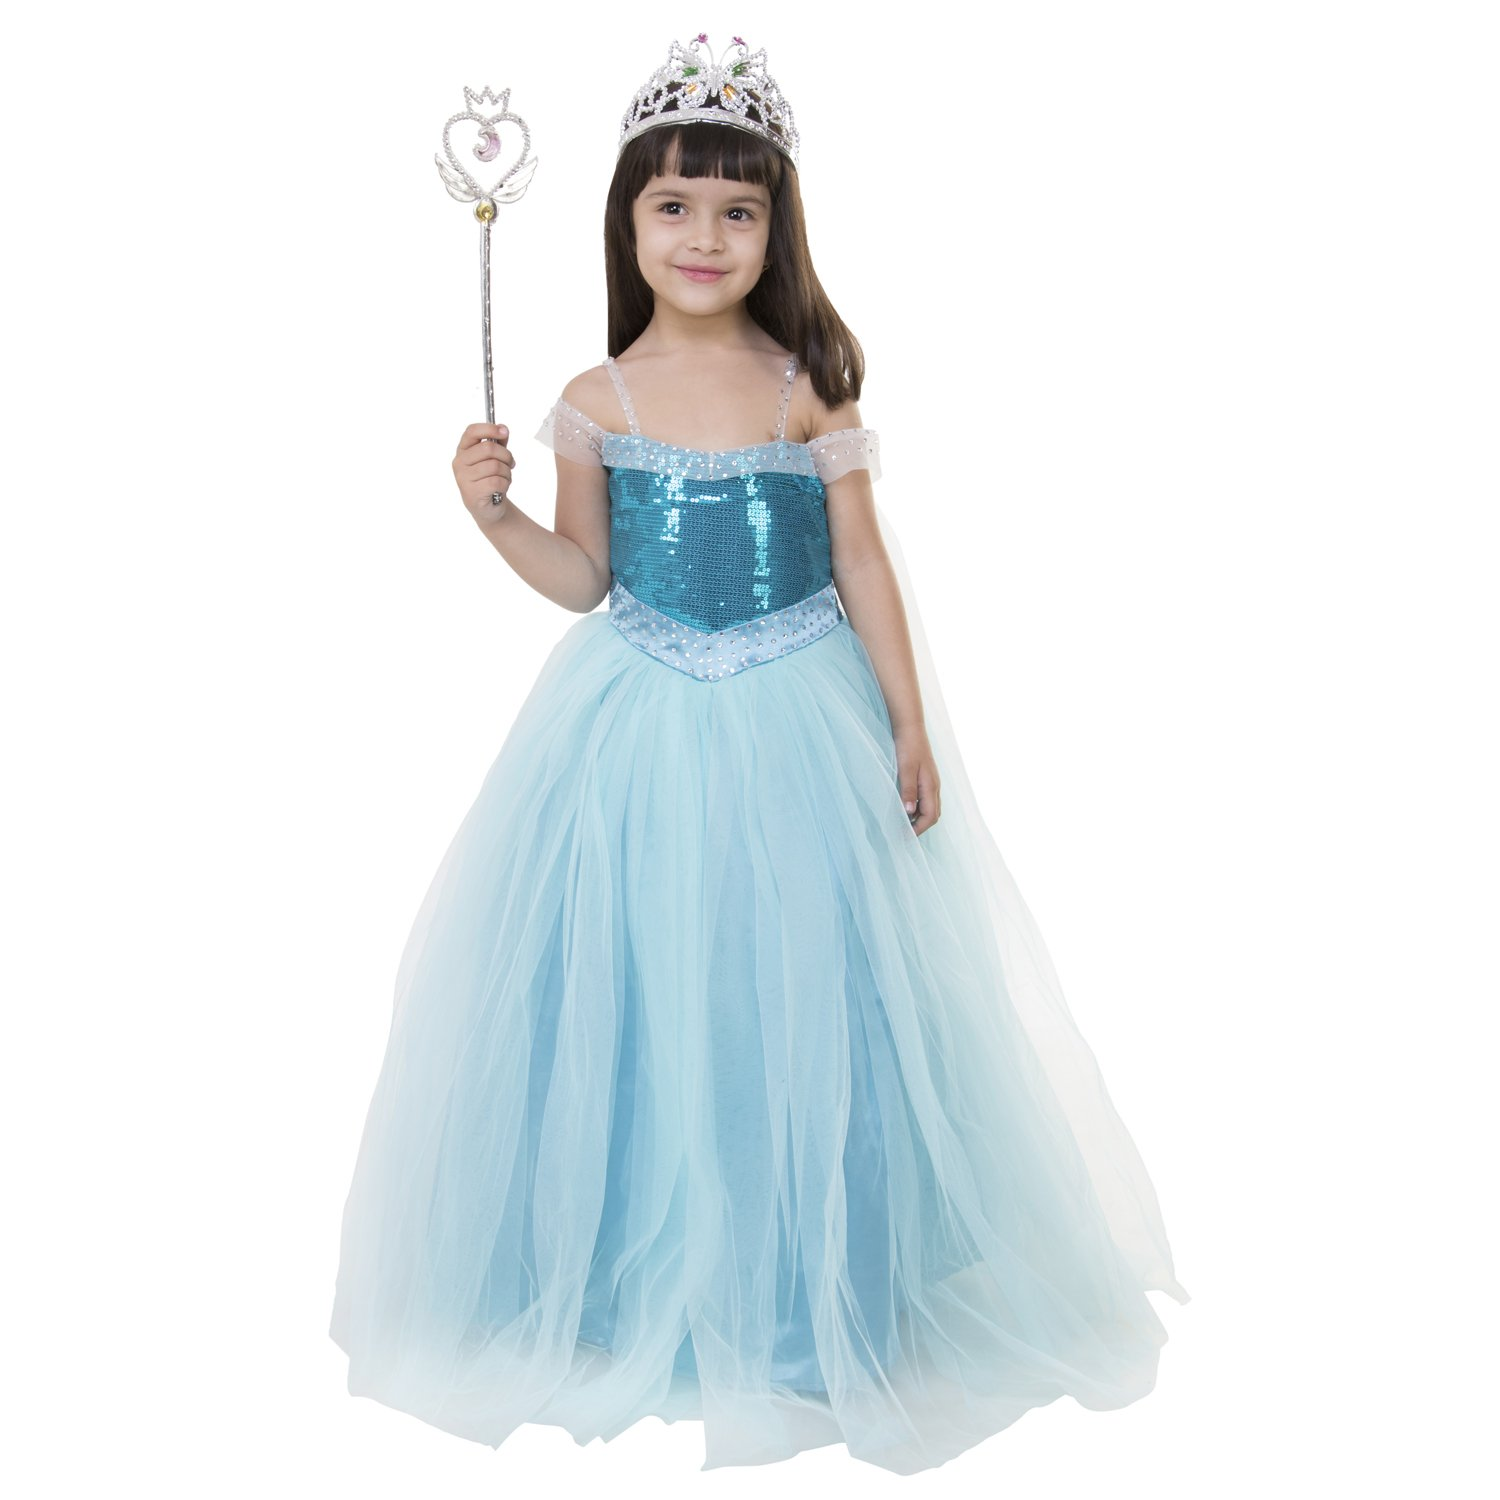 Samsara Souture Baby Princess Frozen Dresses Girl\'s Birthday Party ...